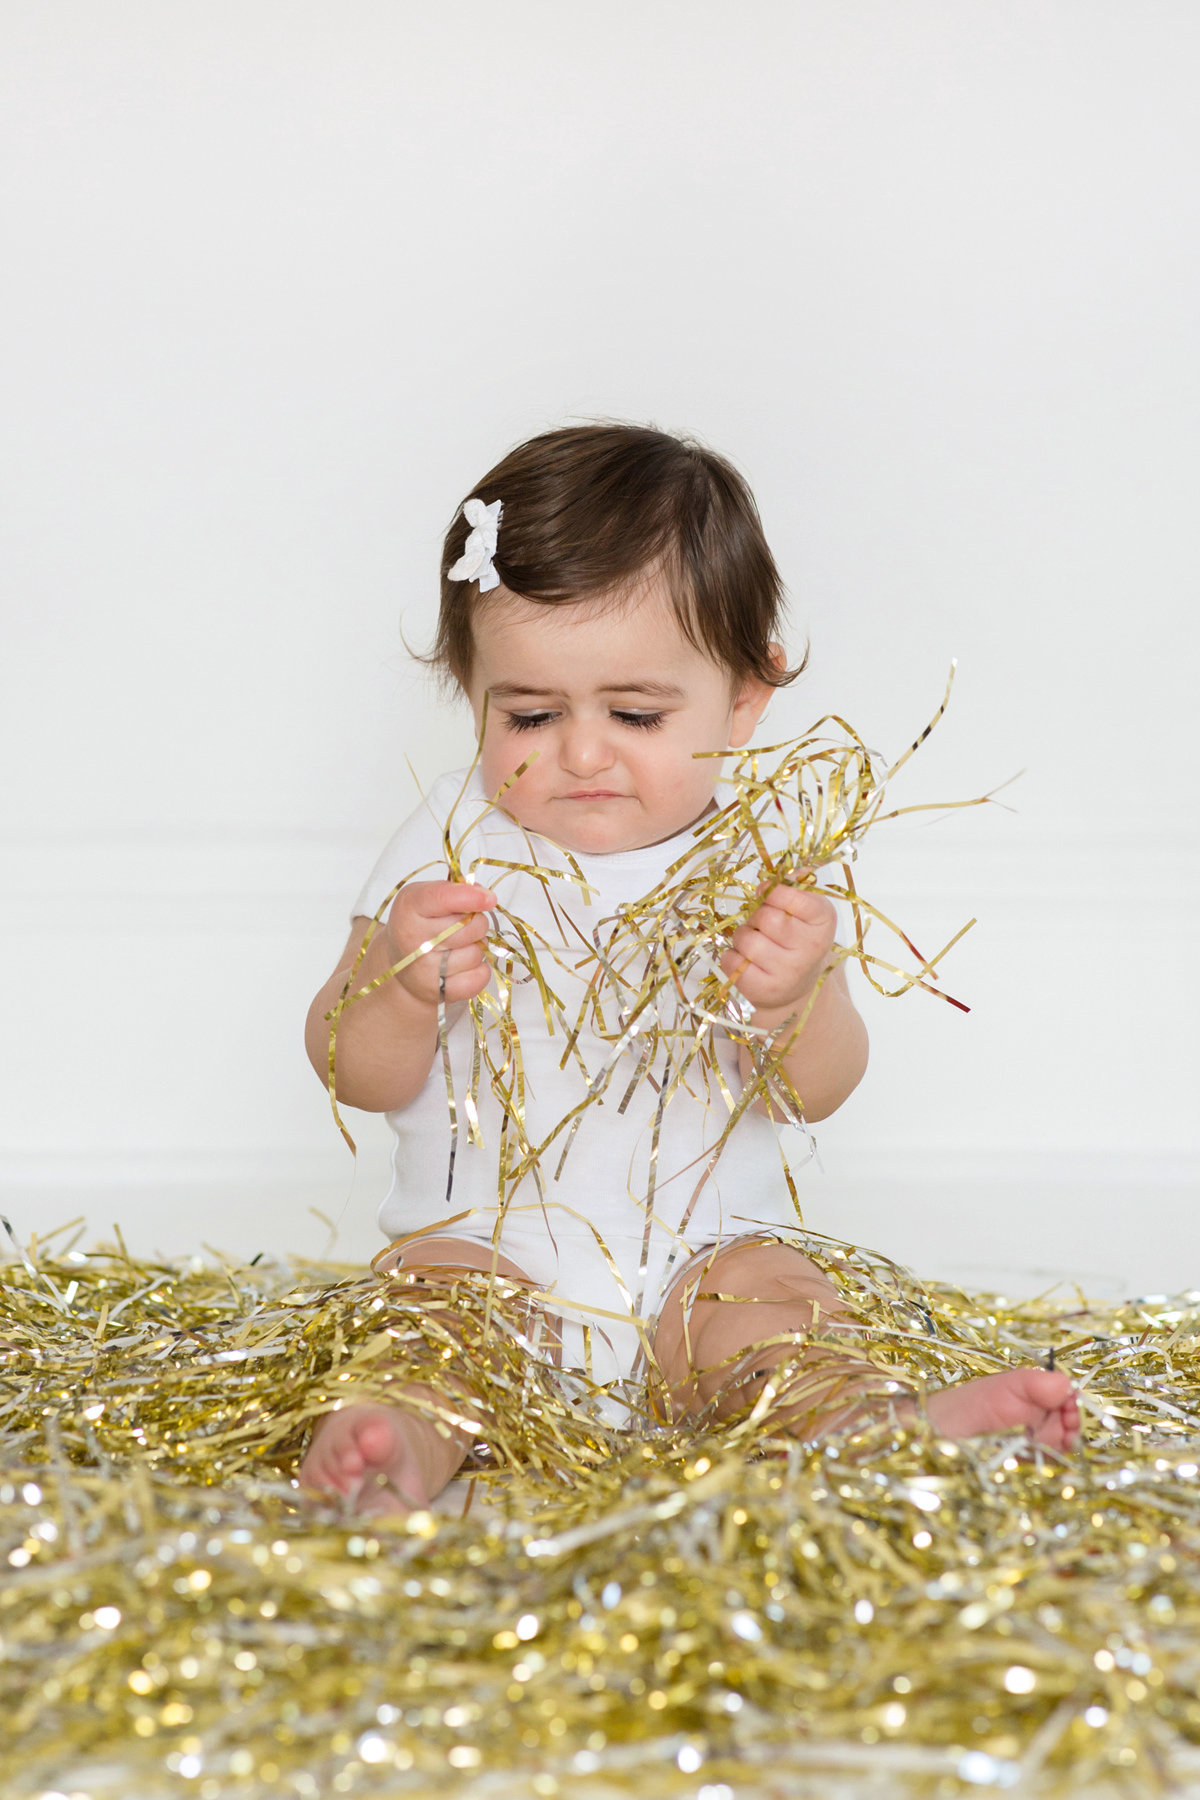 St-Louis-Studio-Child-Photographer-Cake-Smash-1-year-old-Sheth_40